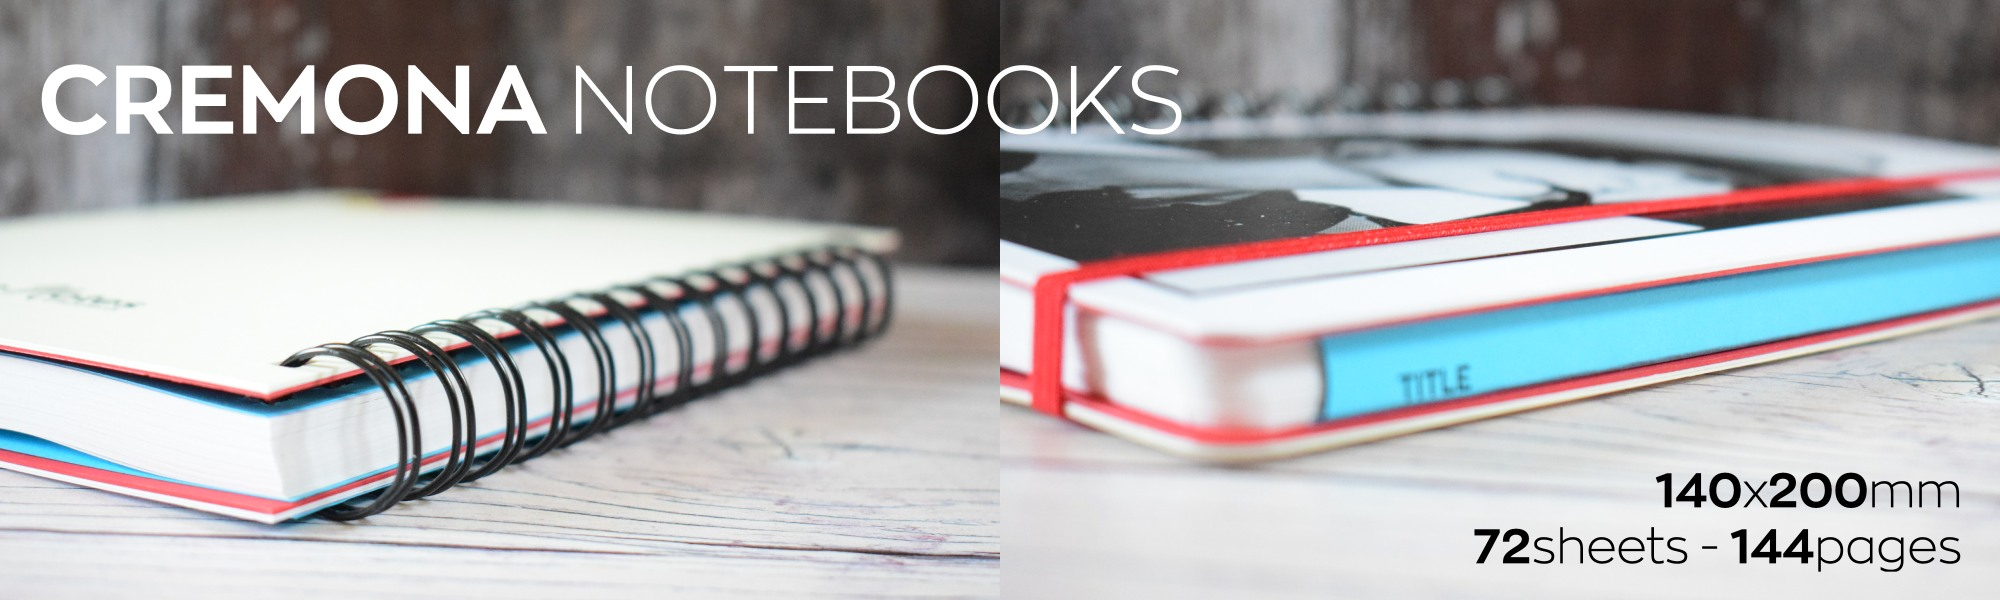 Cremona notebooks are hard-backed wire bound notebook with delectable 85gsm soft milky white pages